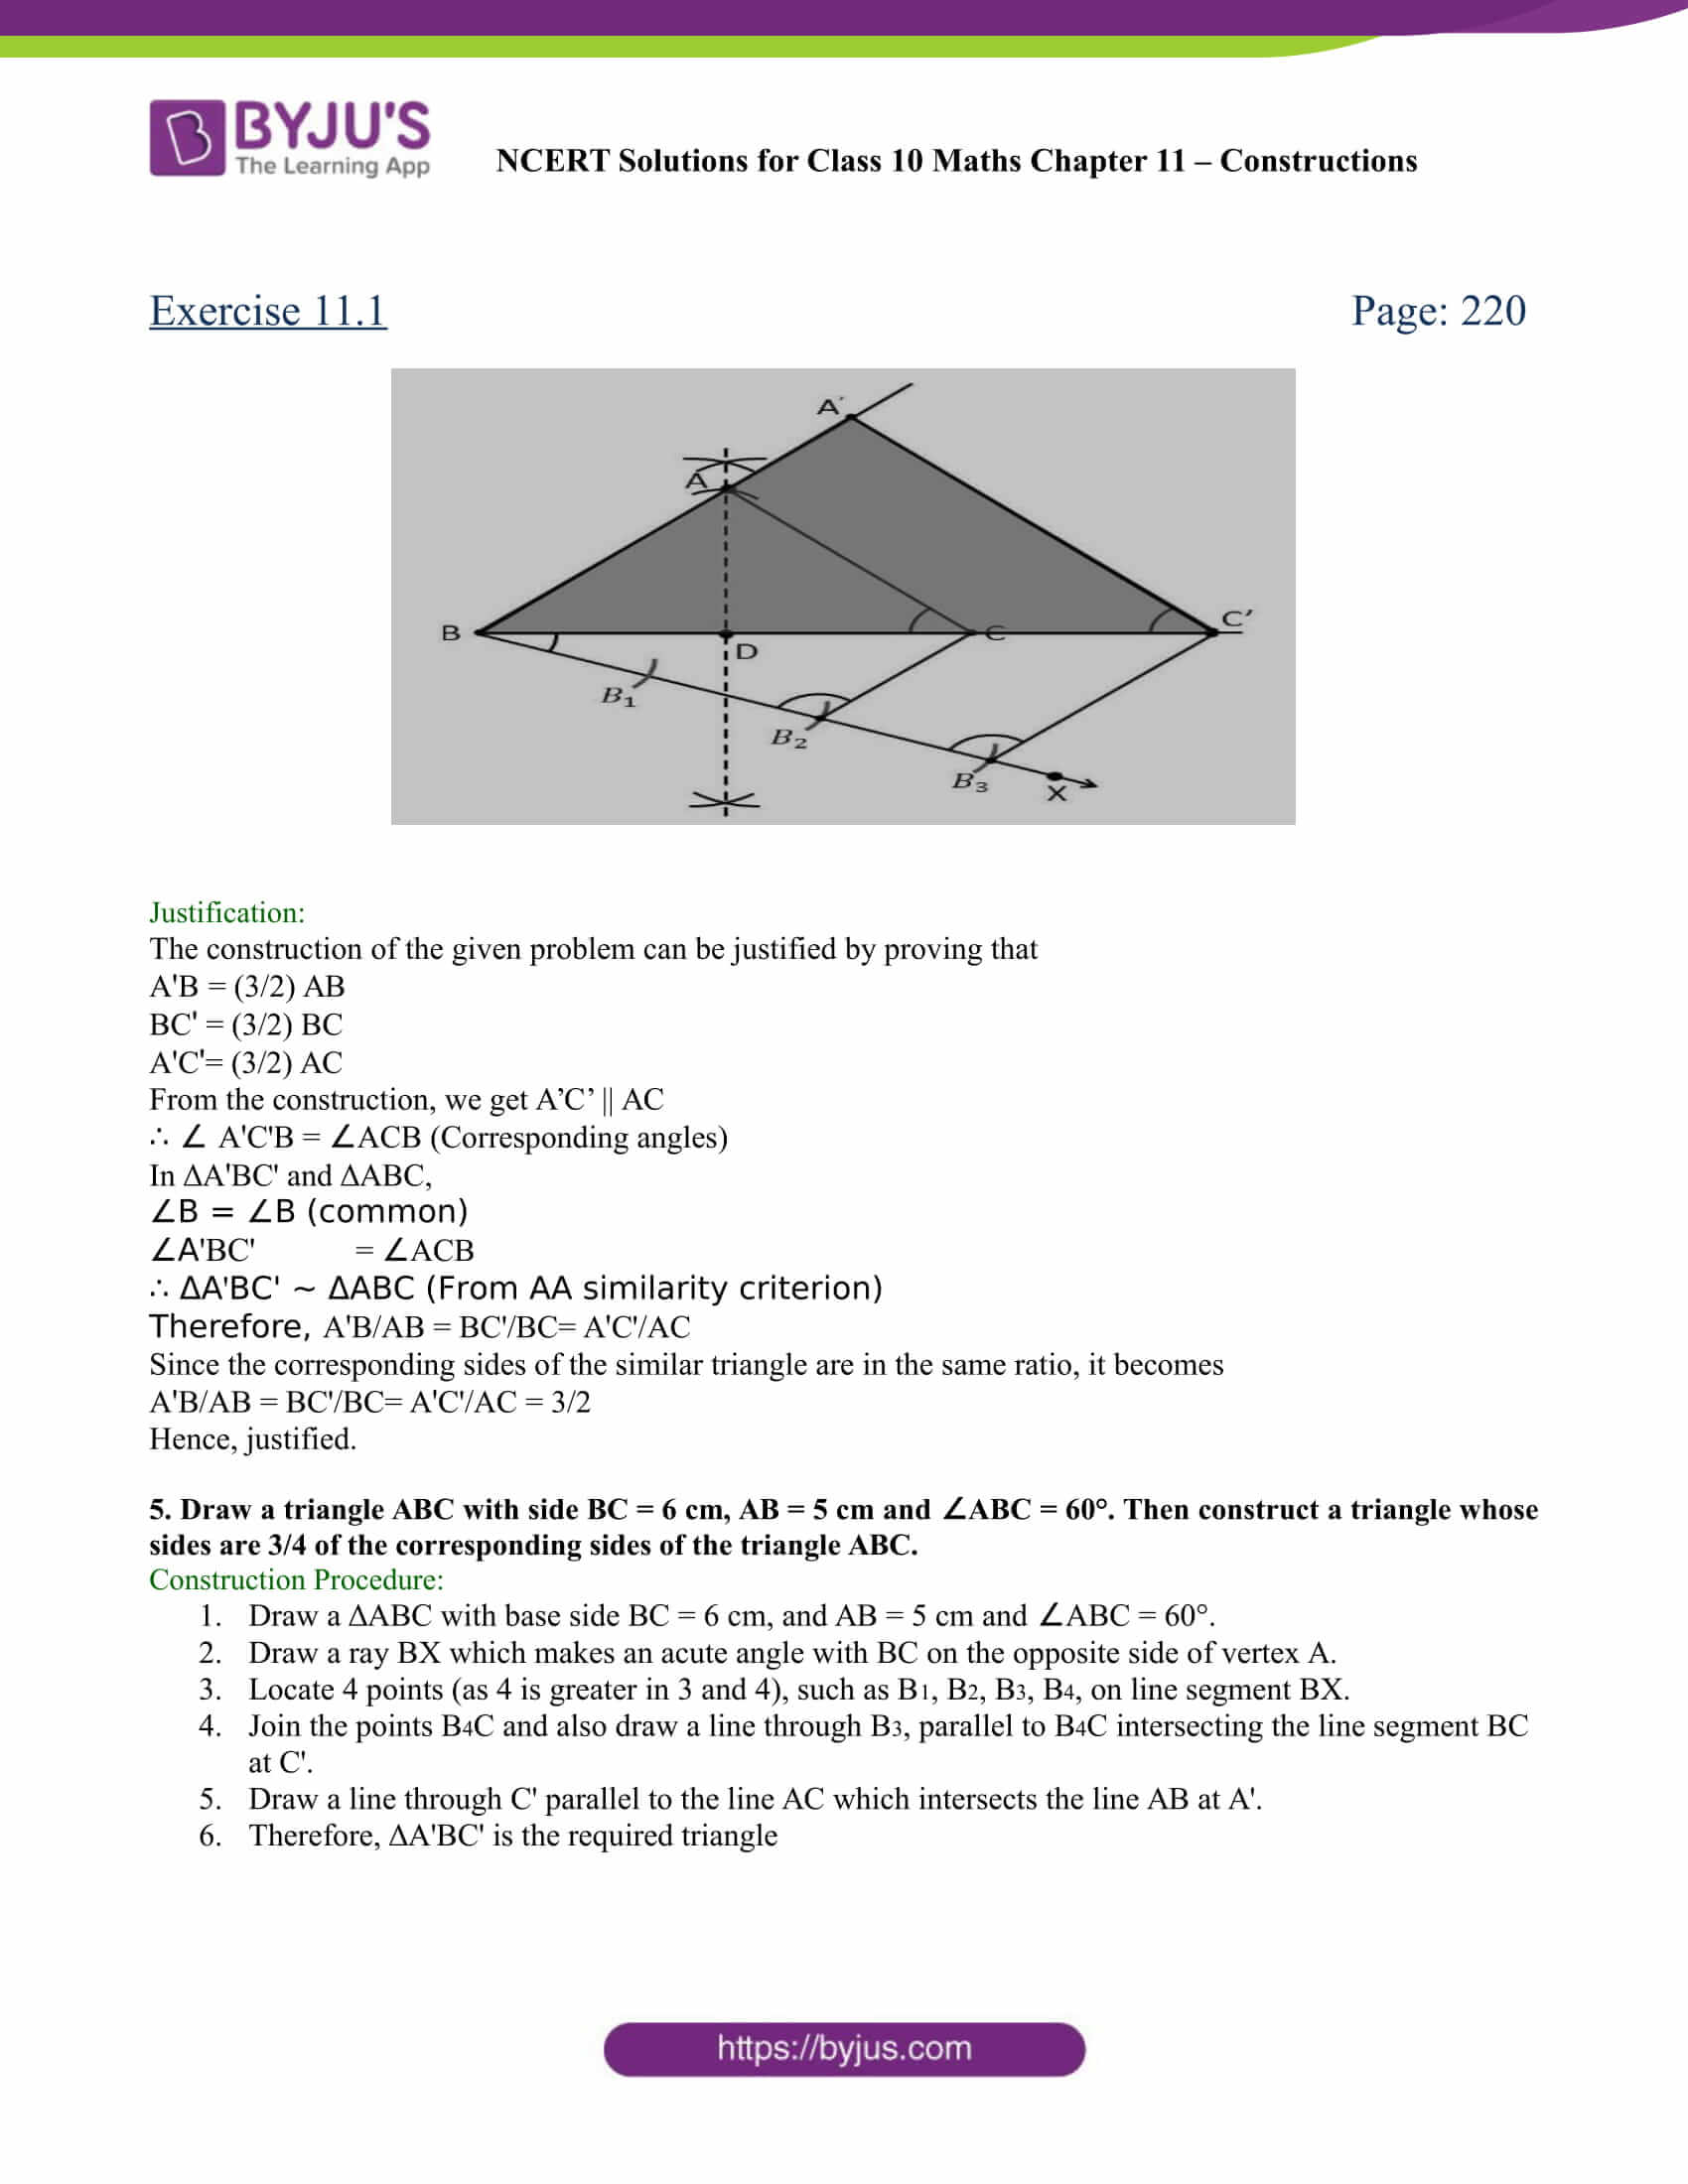 NCERT Solutions for class 10 chapter 11 Constructions Part 5